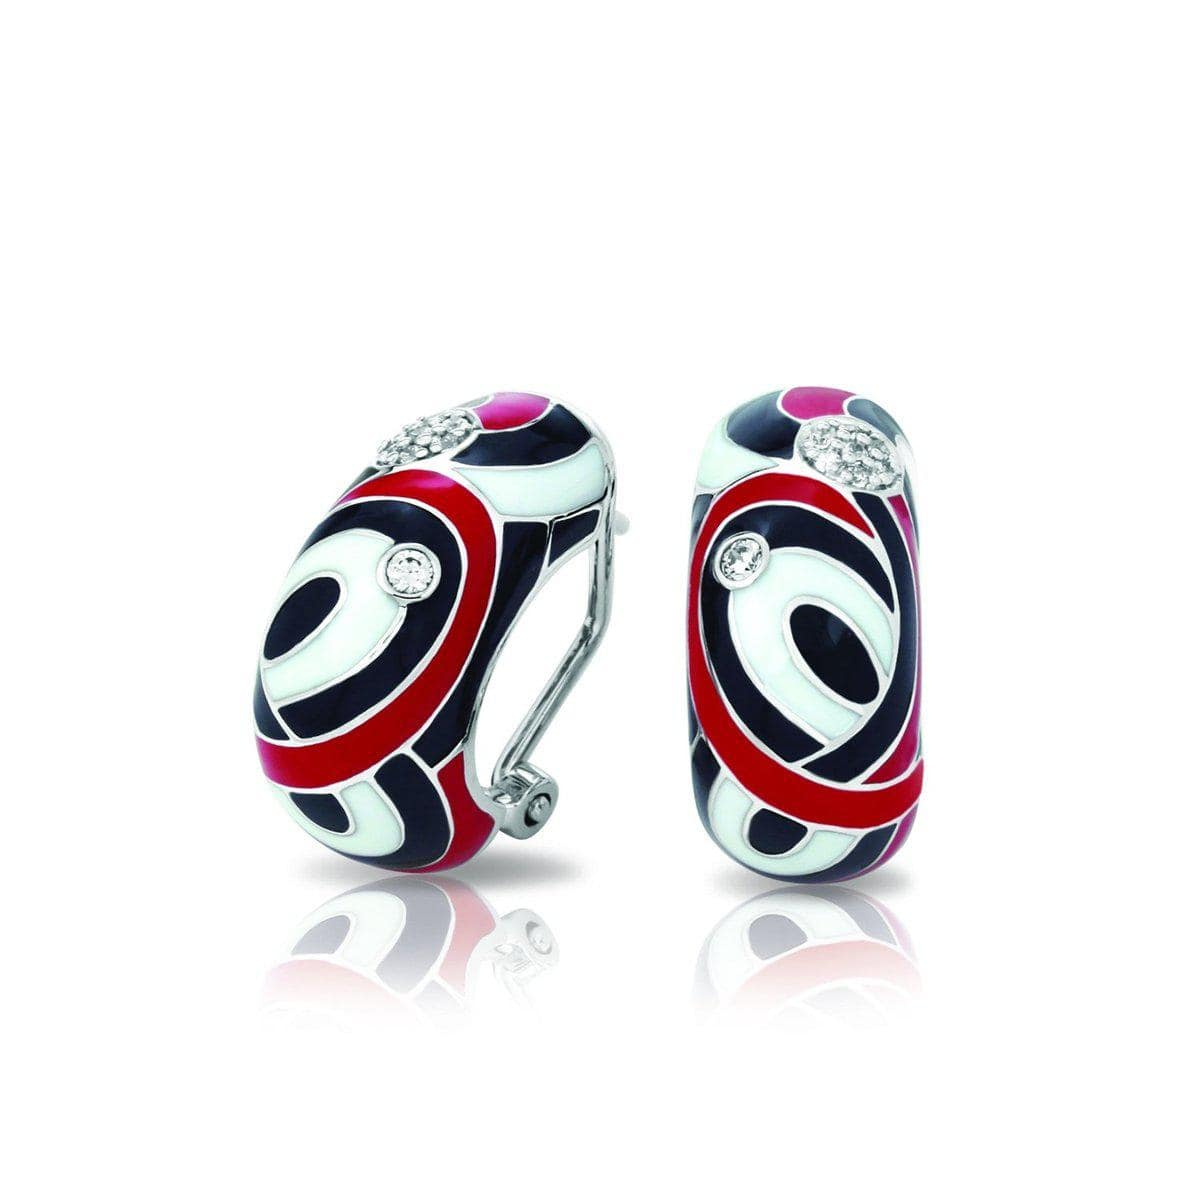 Vortice Black and Red Earrings